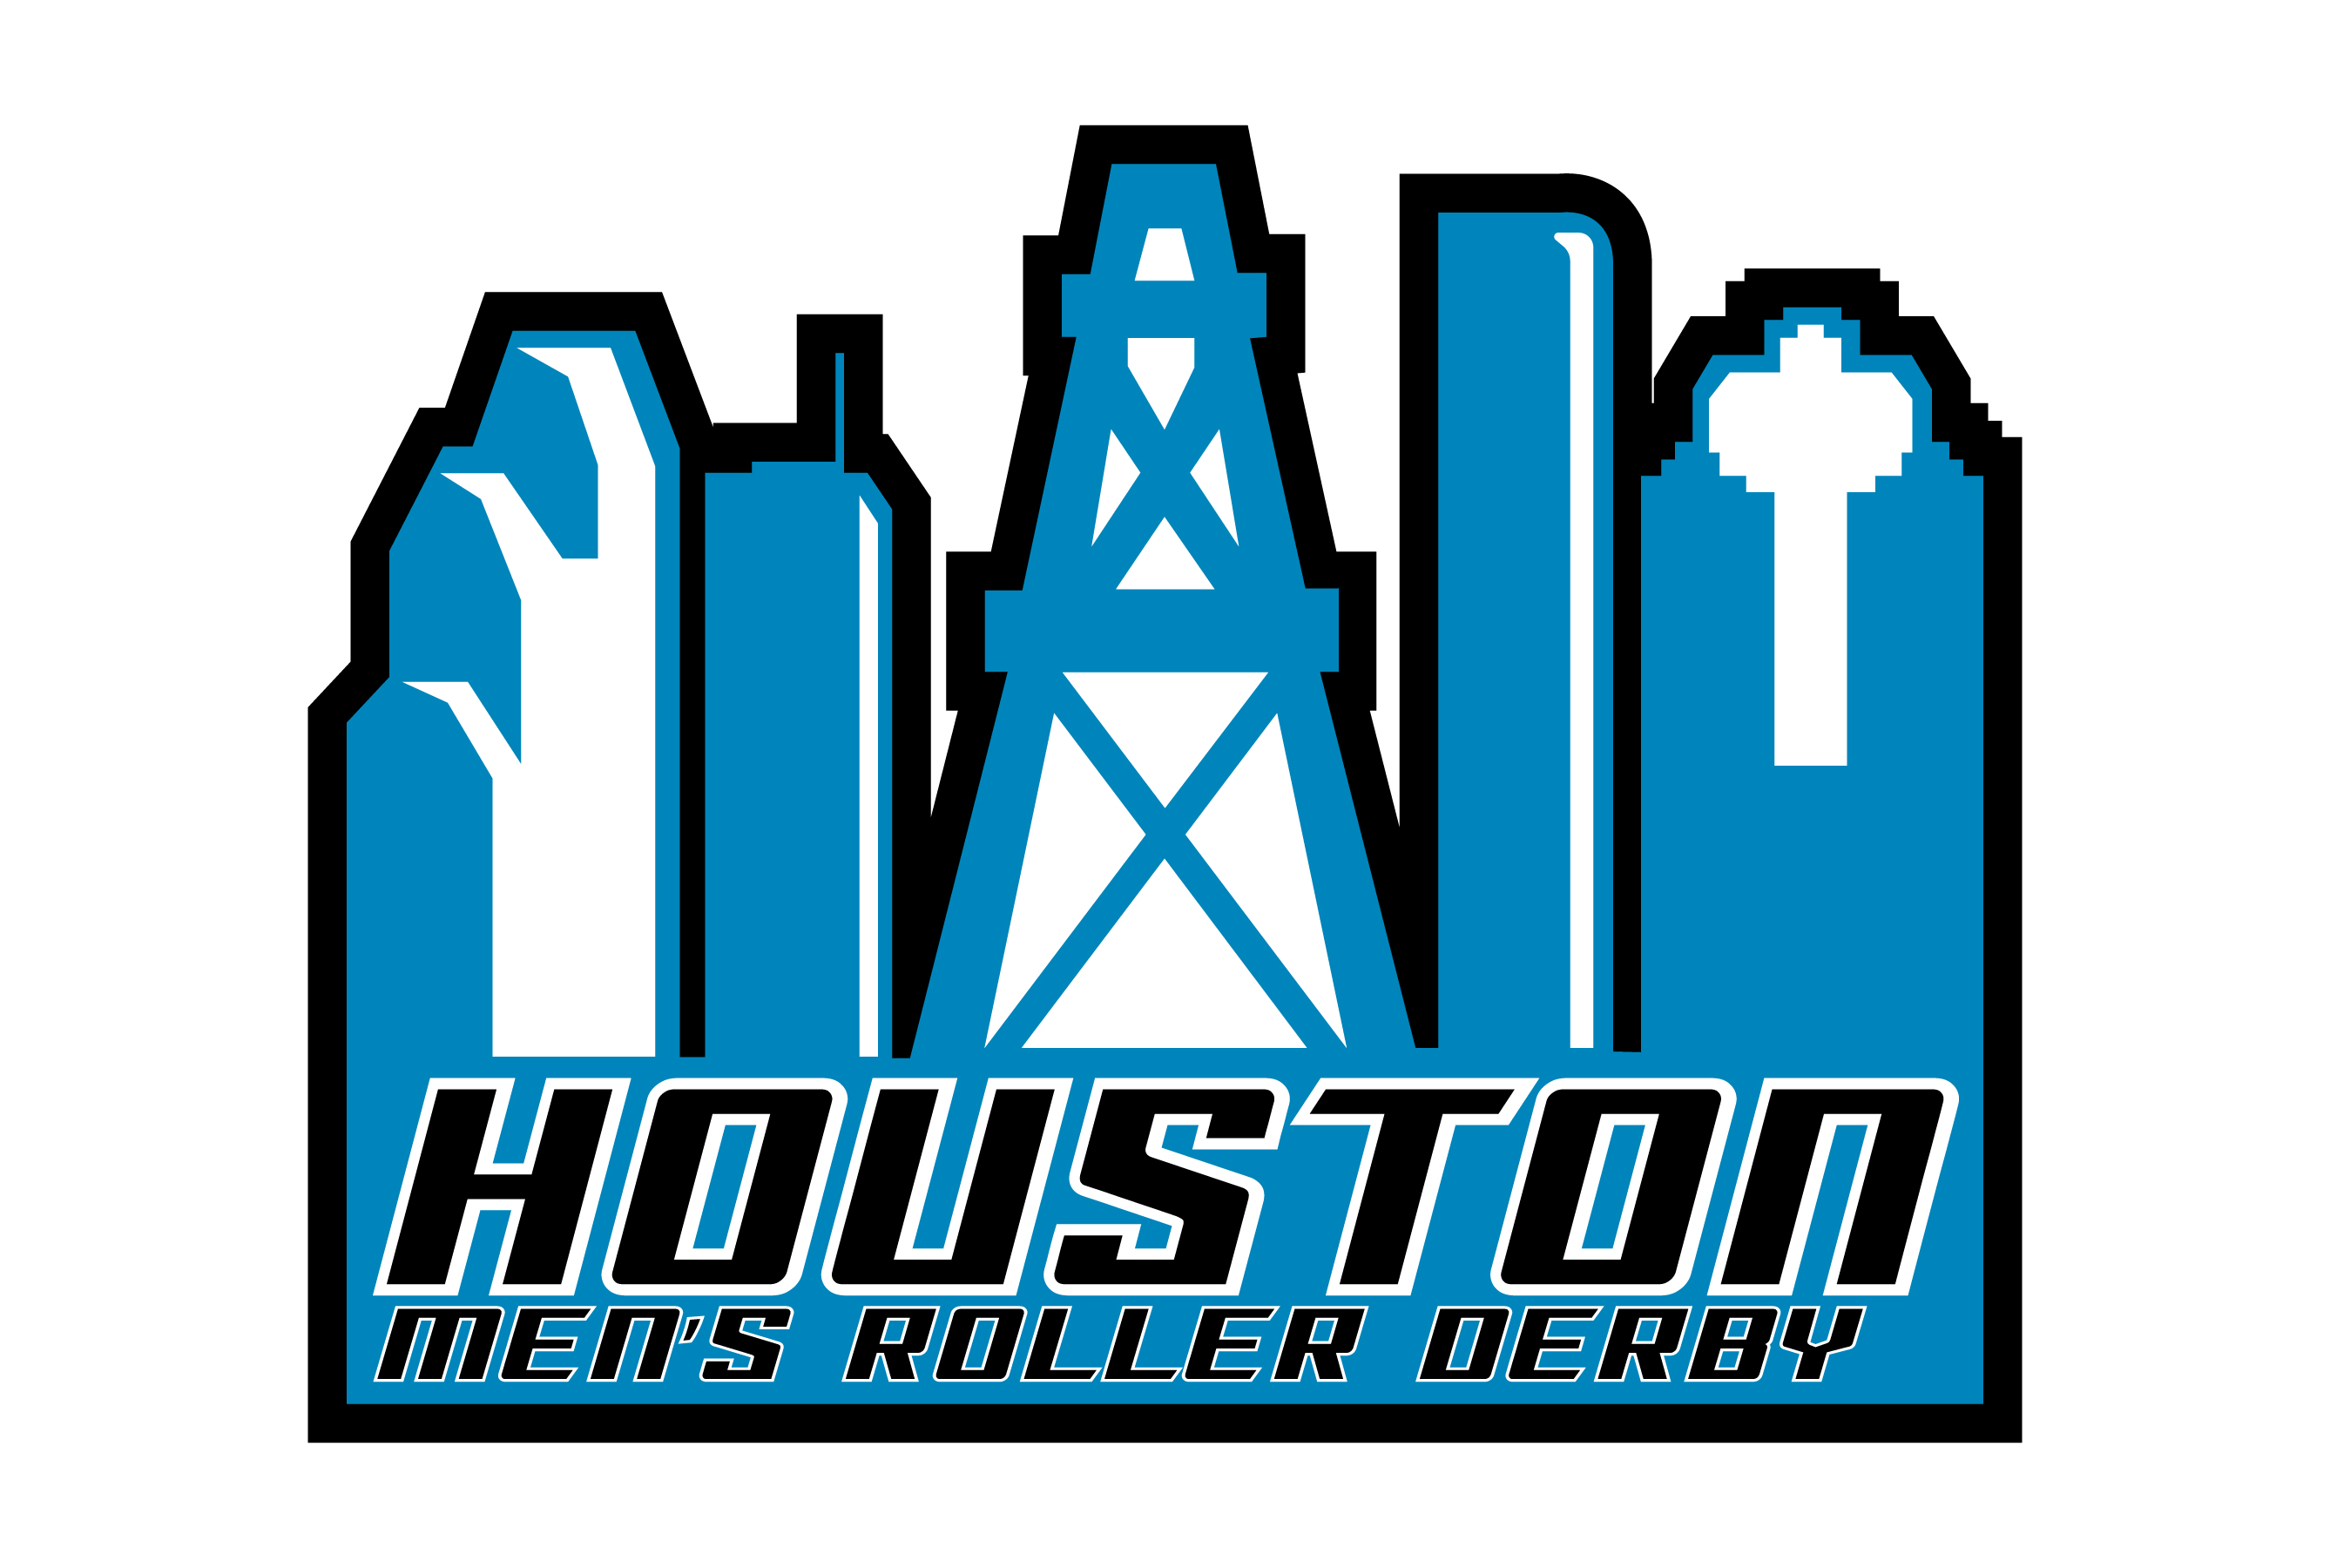 Houston Men's Roller Derby